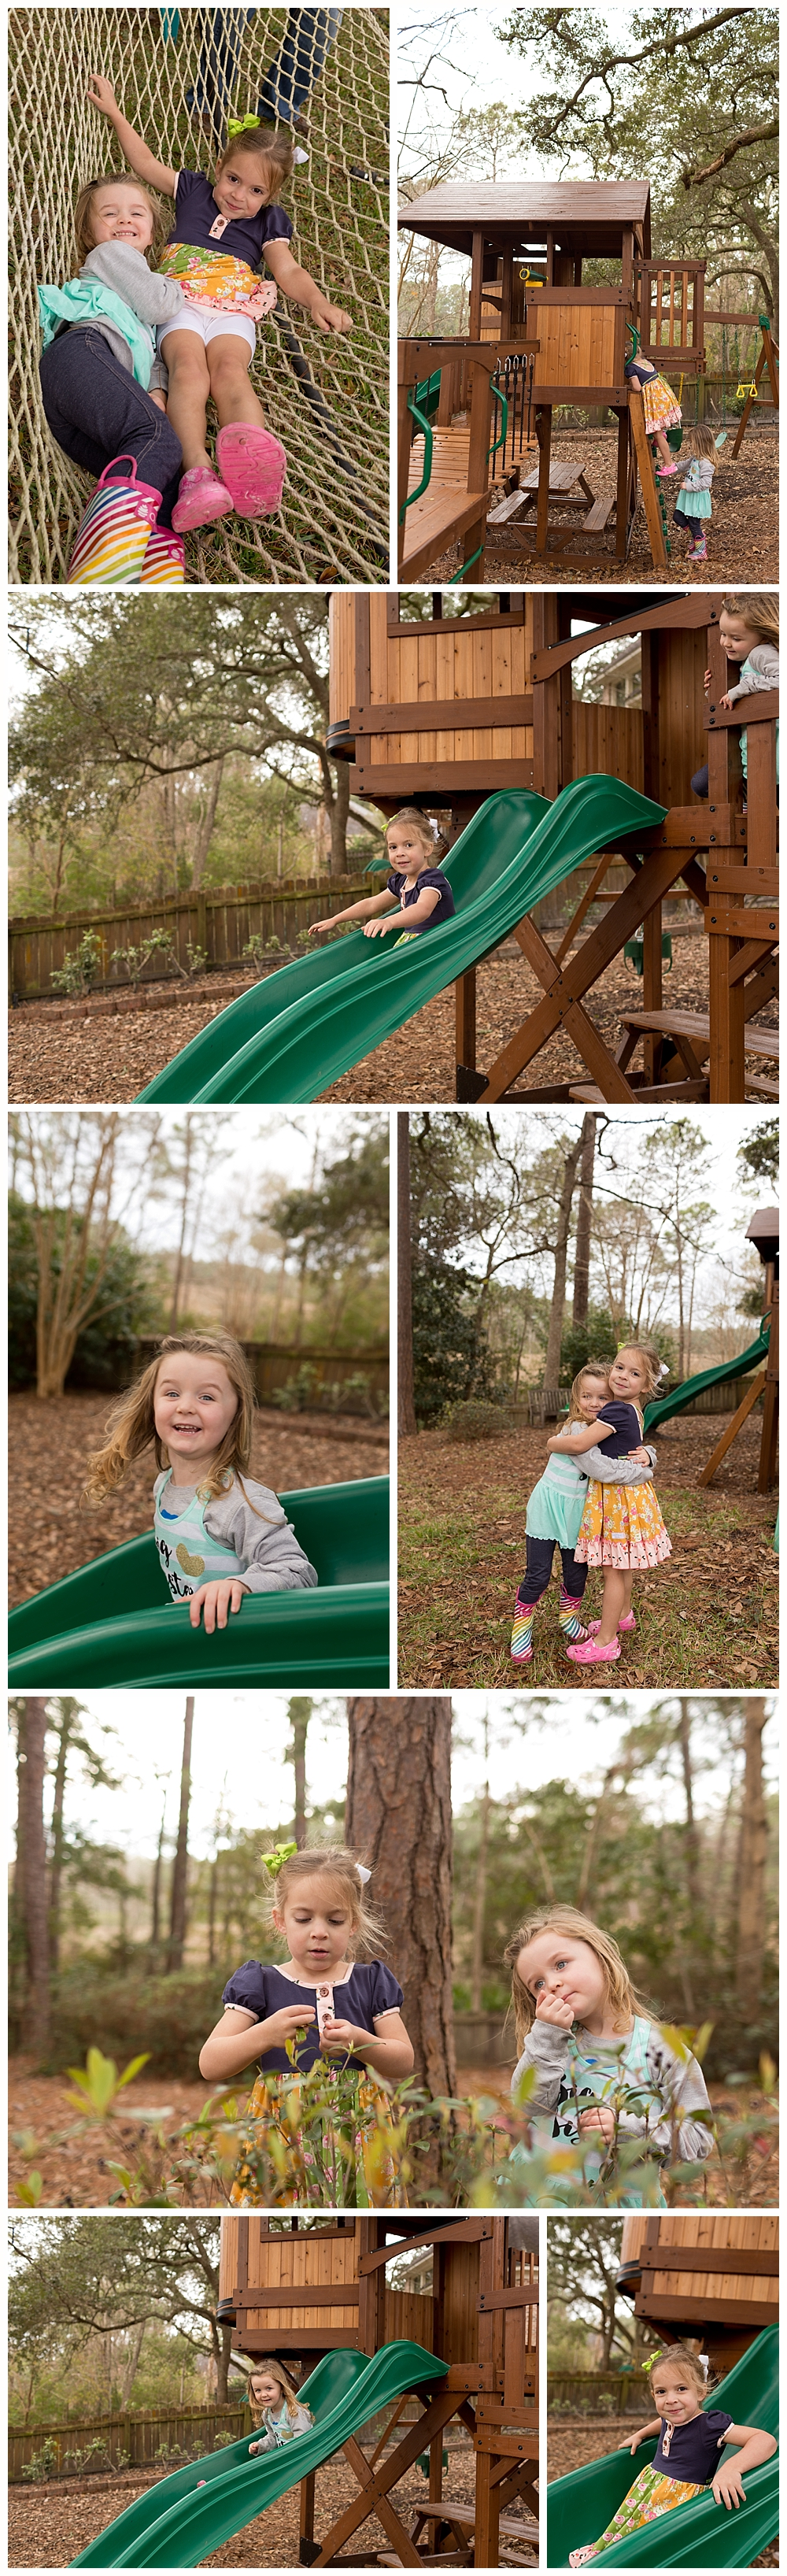 two girls playing outside on playset - fun with neighbors in Ocean Springs, MS